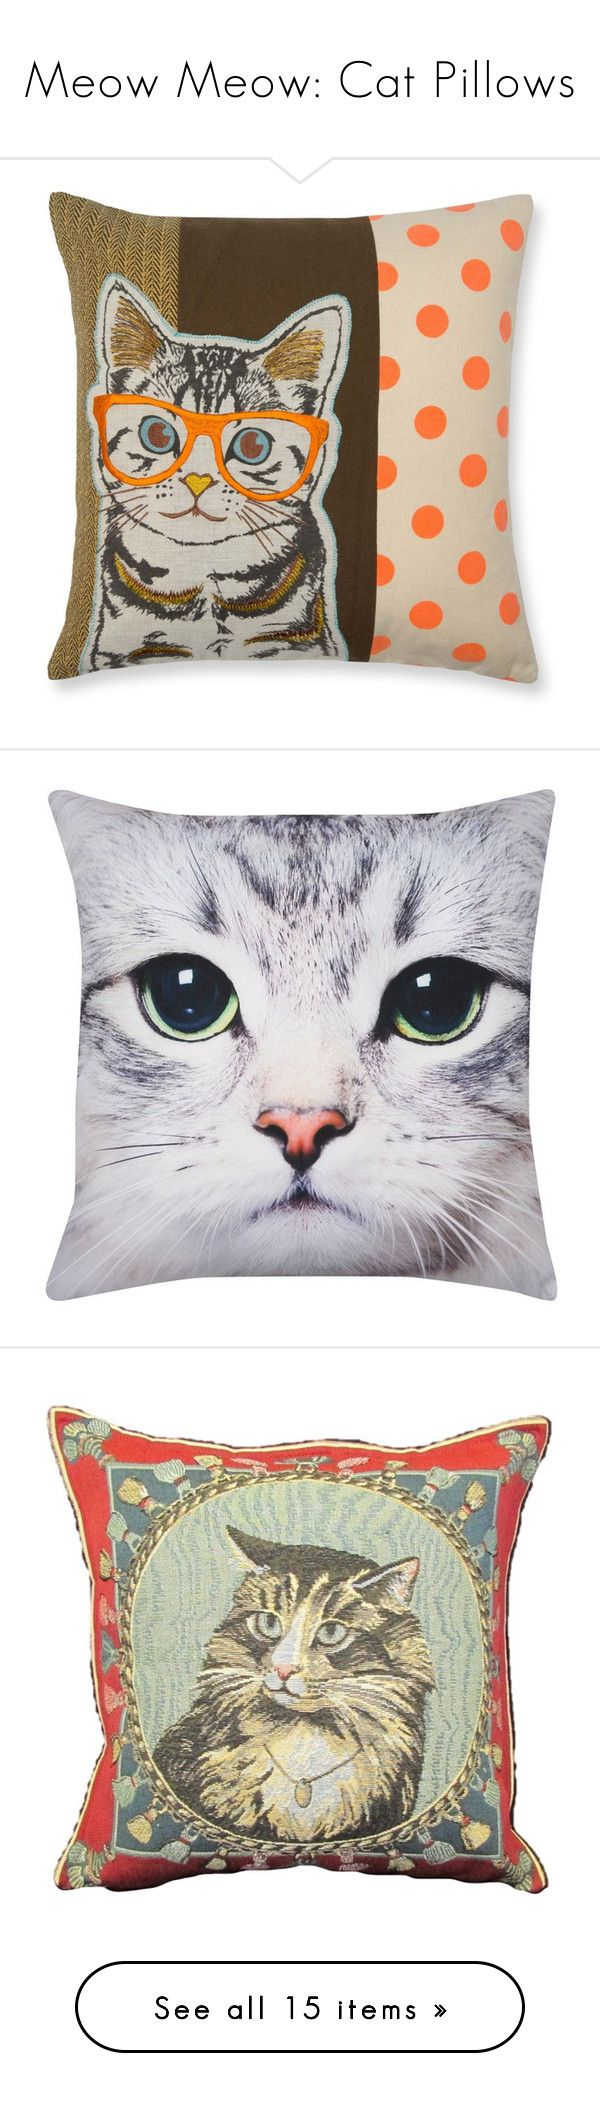 """""""Meow Meow: Cat Pillows"""" by polyvore-editorial ❤ liked on Polyvore featuring catpillows, home, home decor, throw pillows, multicolored, colorful throw pillows, patterned throw pillows, embroidered throw pillows, cat home decor and multi colored throw pillows"""